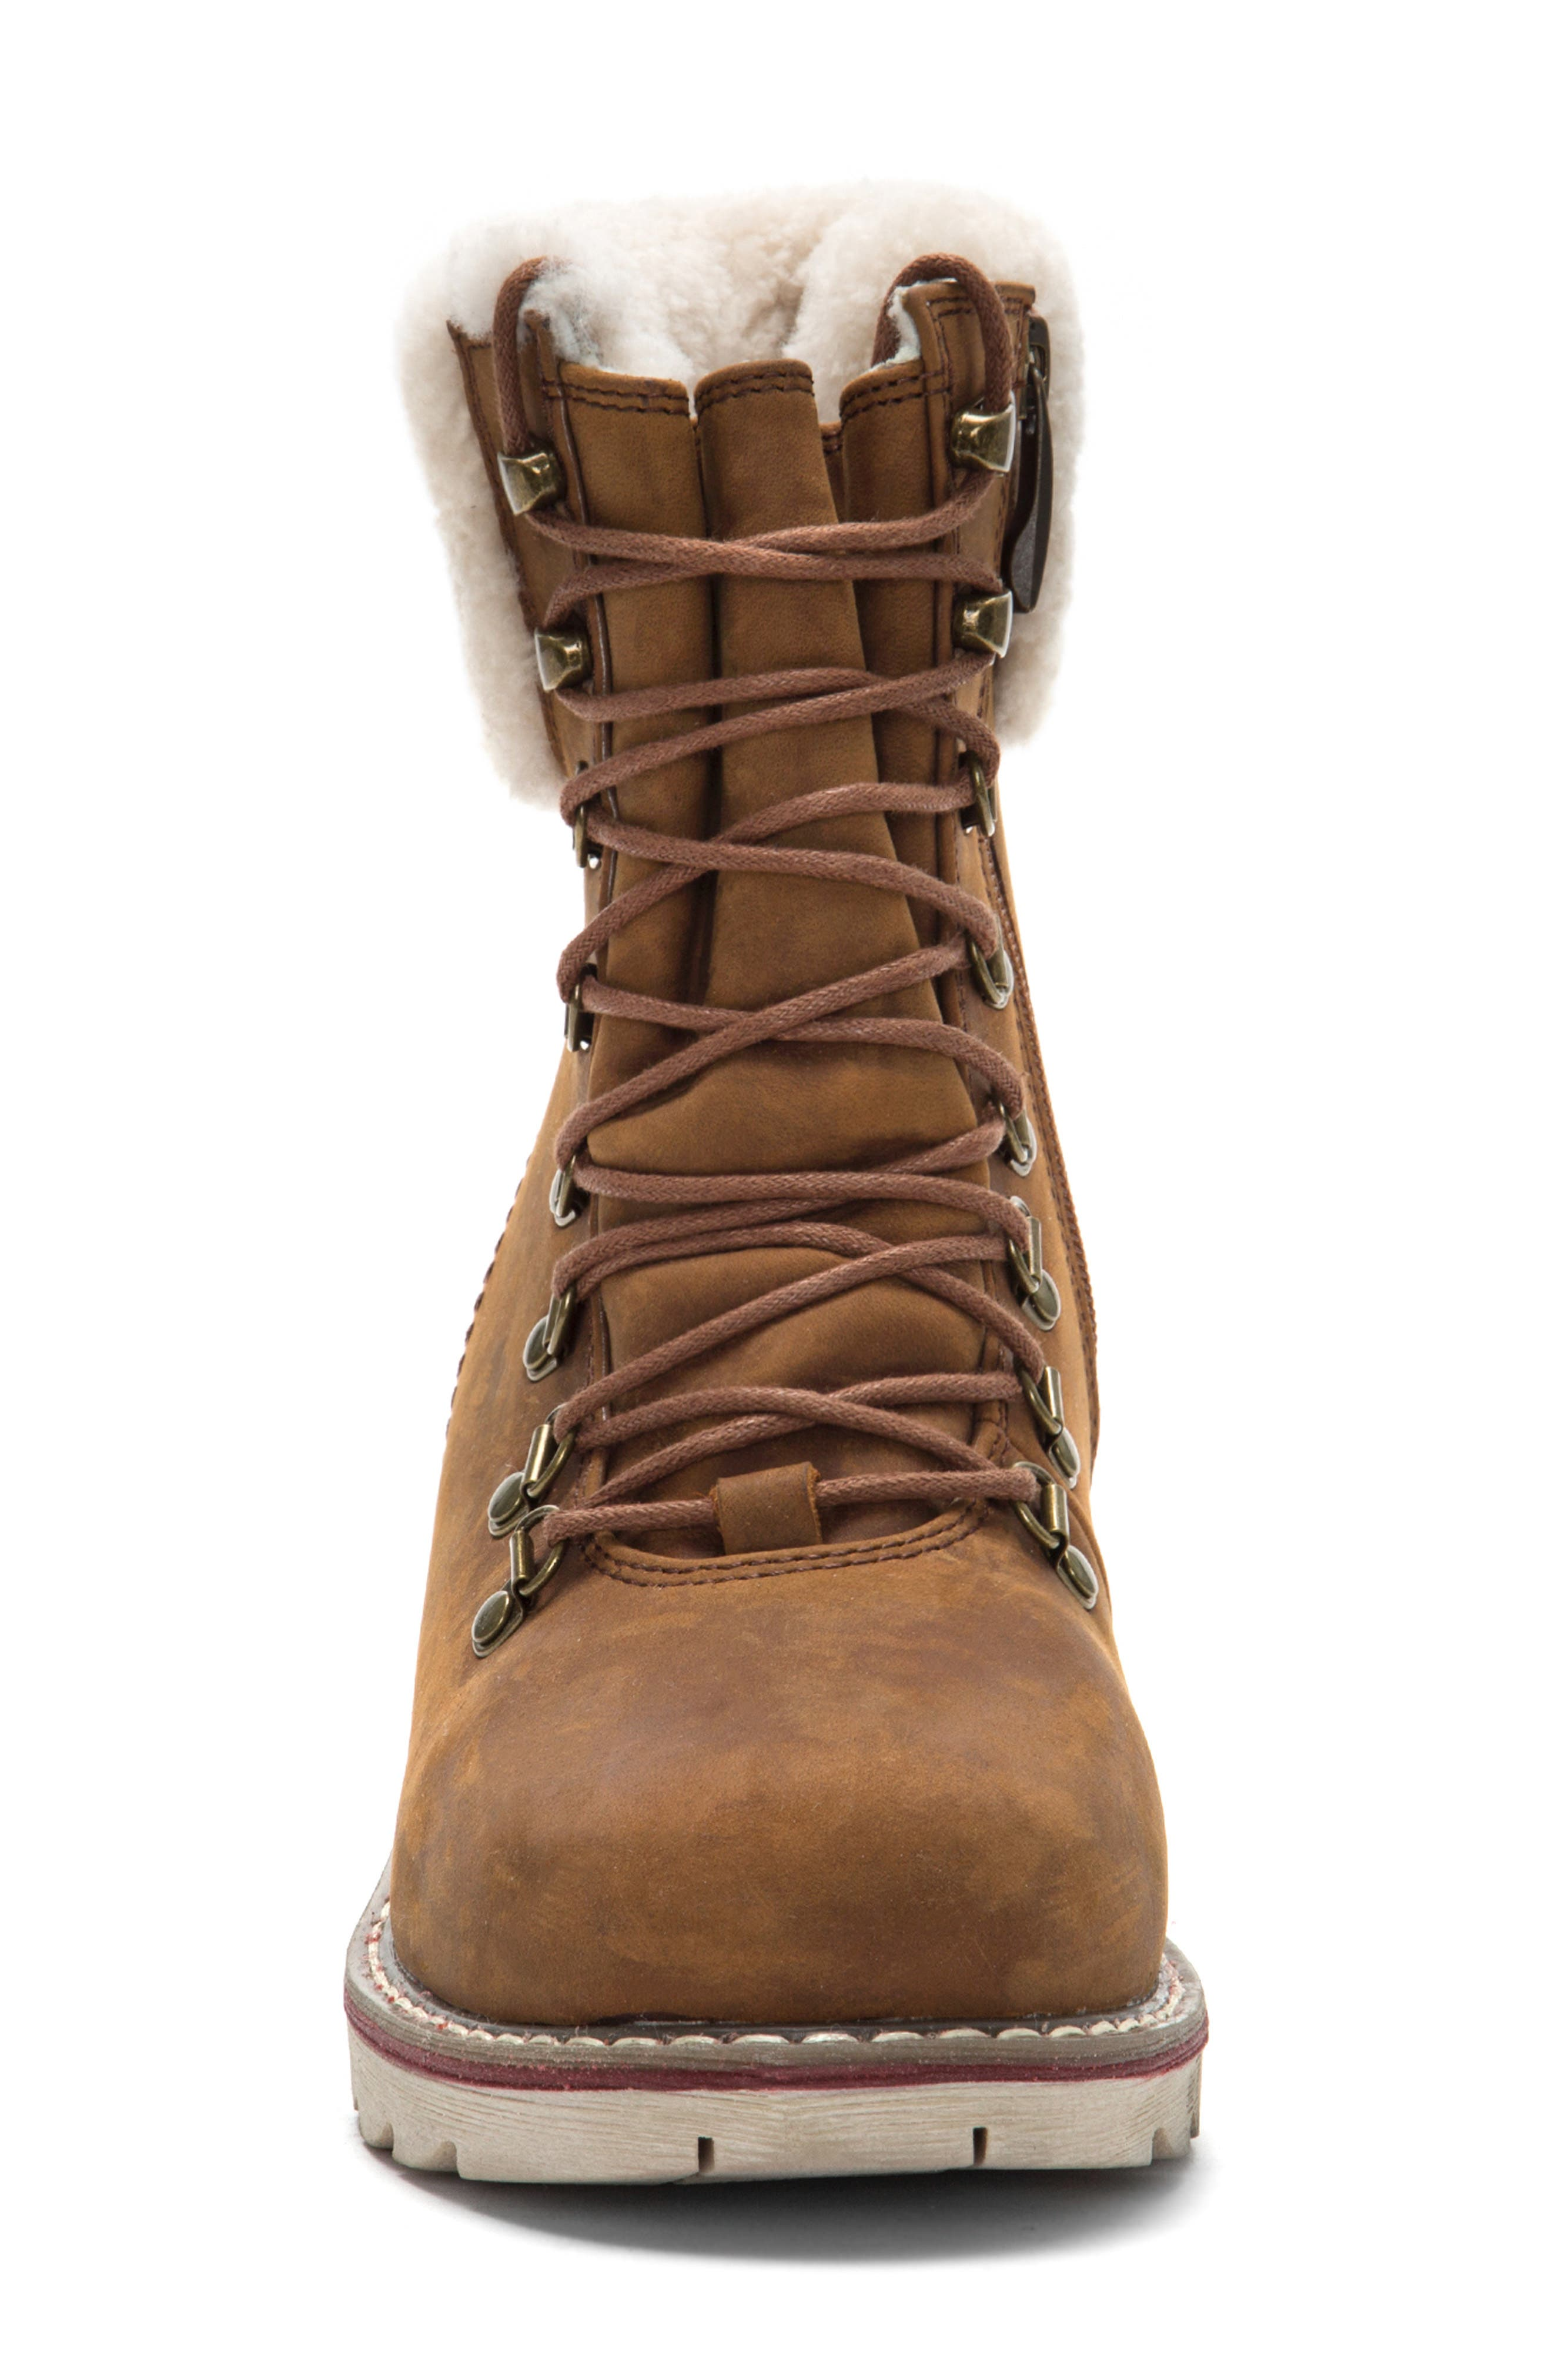 ROYAL CANADIAN, Lethbridge Waterproof Snow Boot with Genuine Shearling Cuff, Alternate thumbnail 3, color, COTTAGE BROWN LEATHER